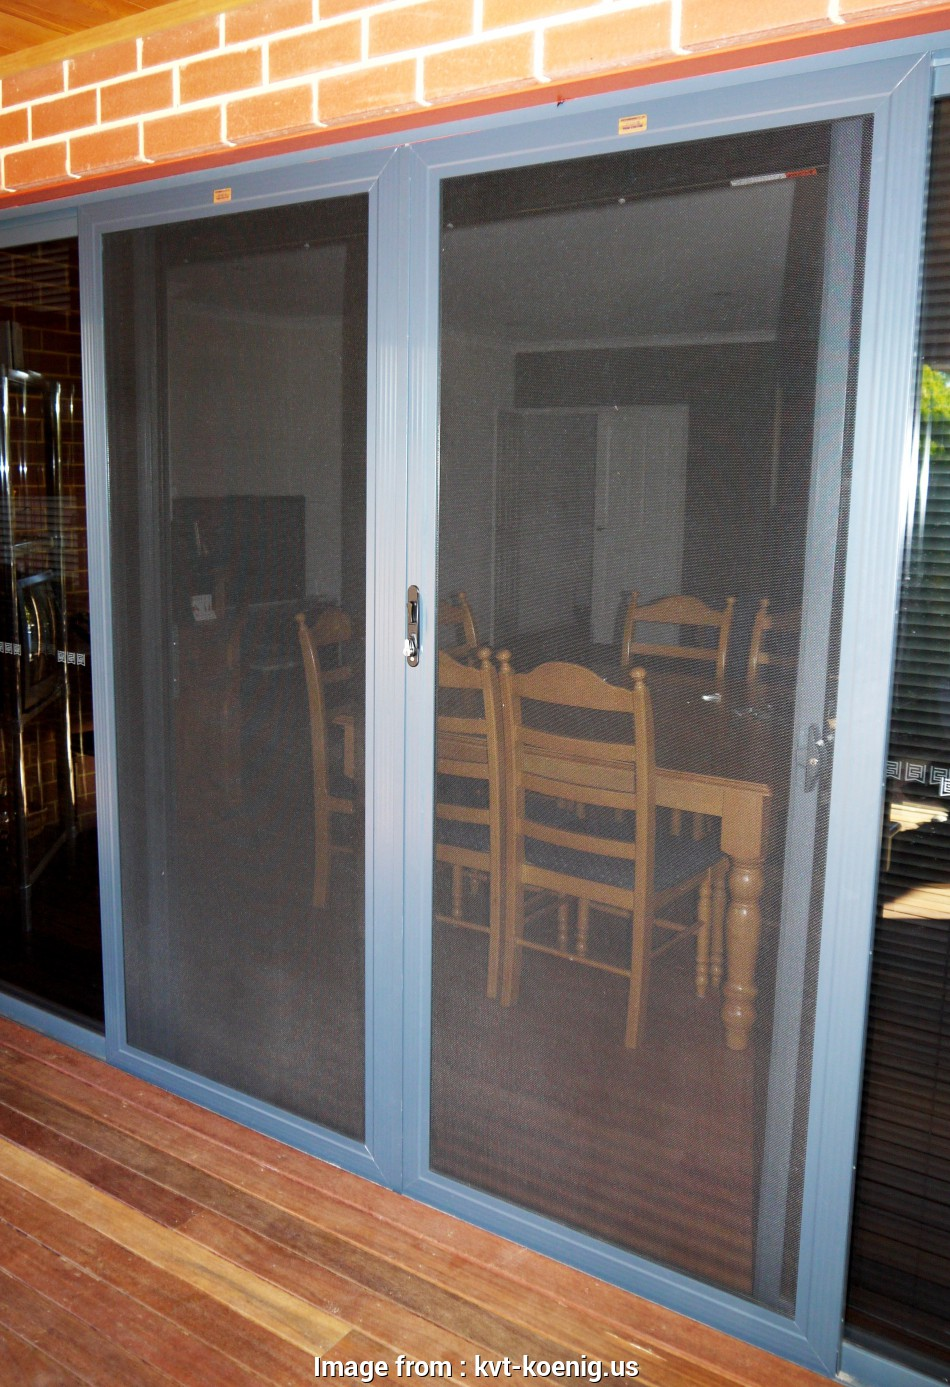 wire mesh security door Sliding Security Doors Provided In Perth, Joondalup Perth with regard to measurements 2613 X 3813 15 Perfect Wire Mesh Security Door Solutions